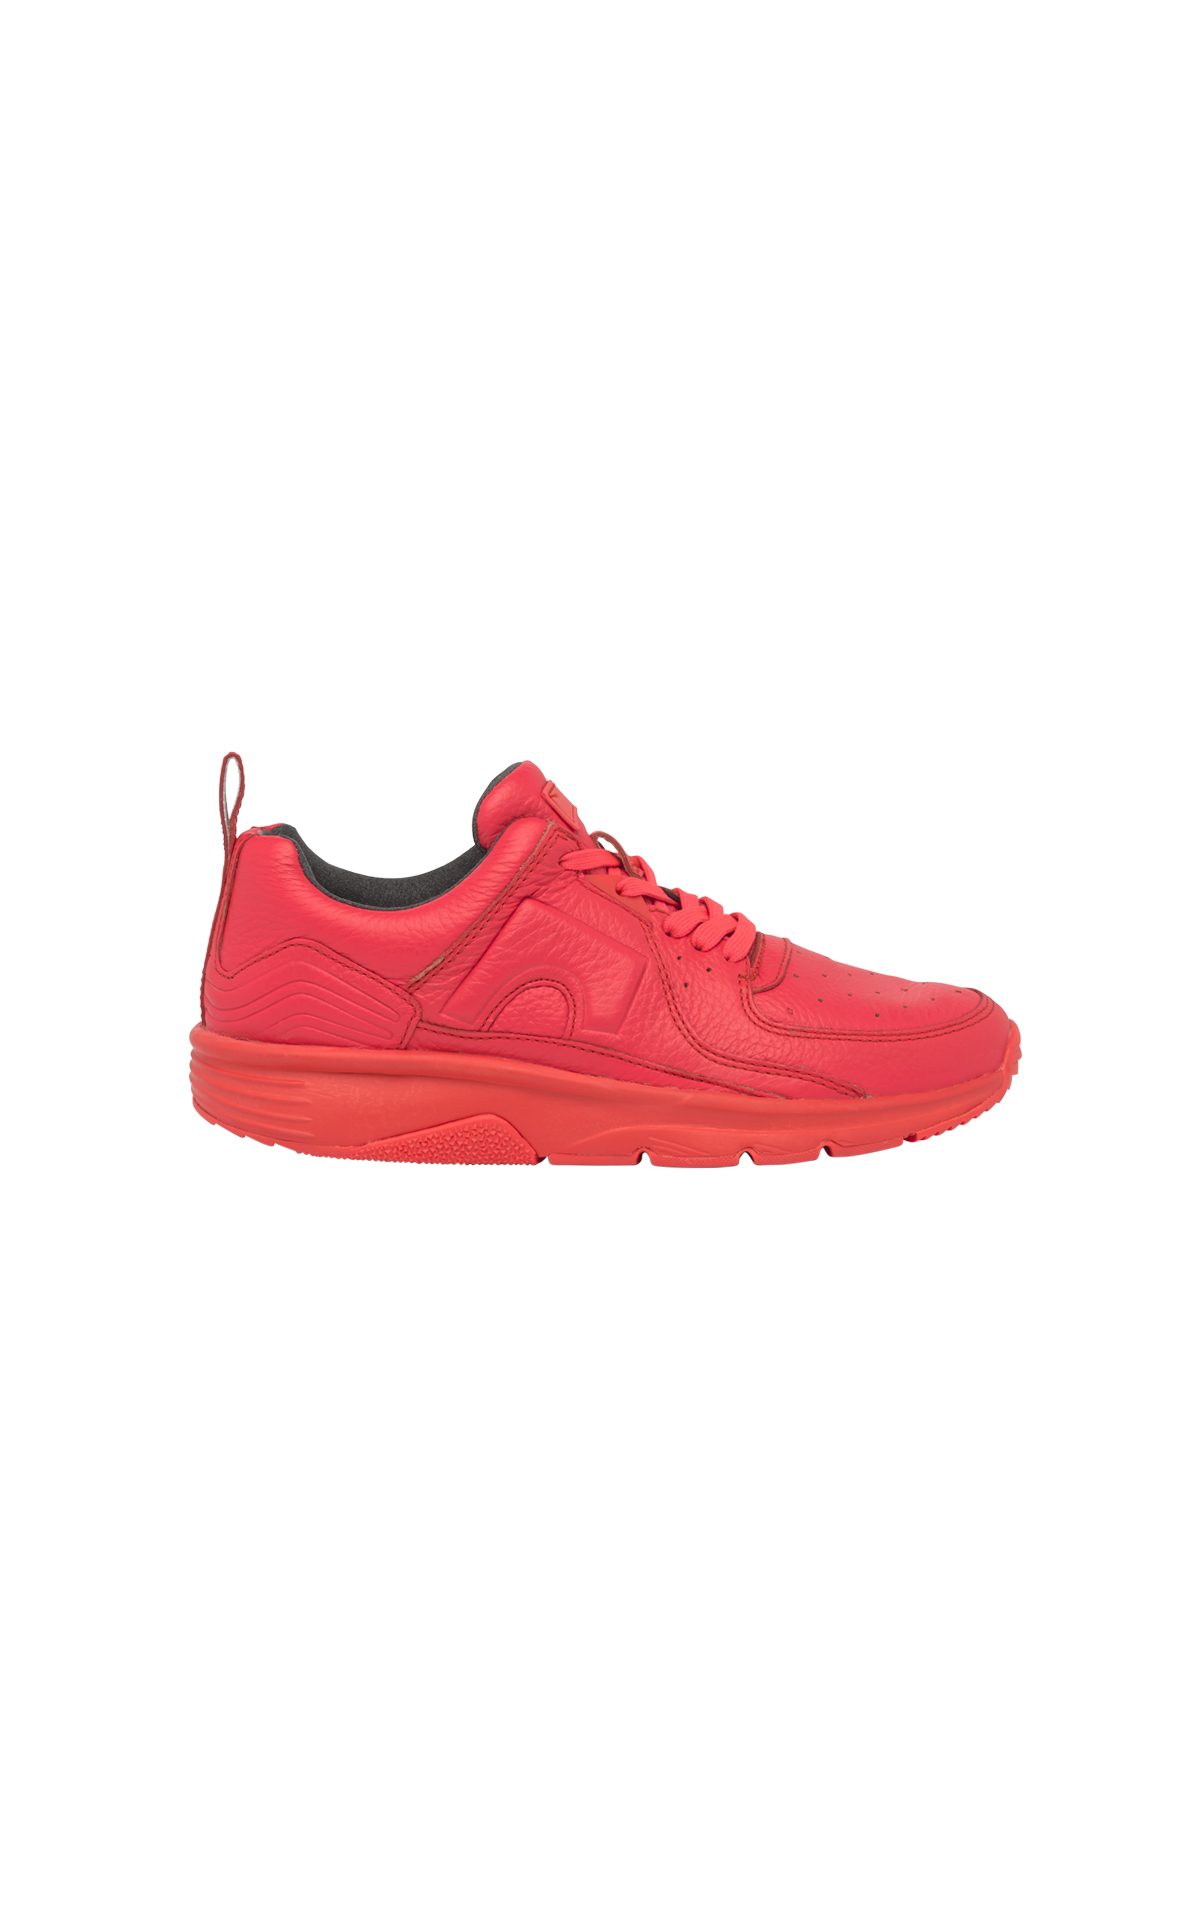 Coral sneakers woman Camper